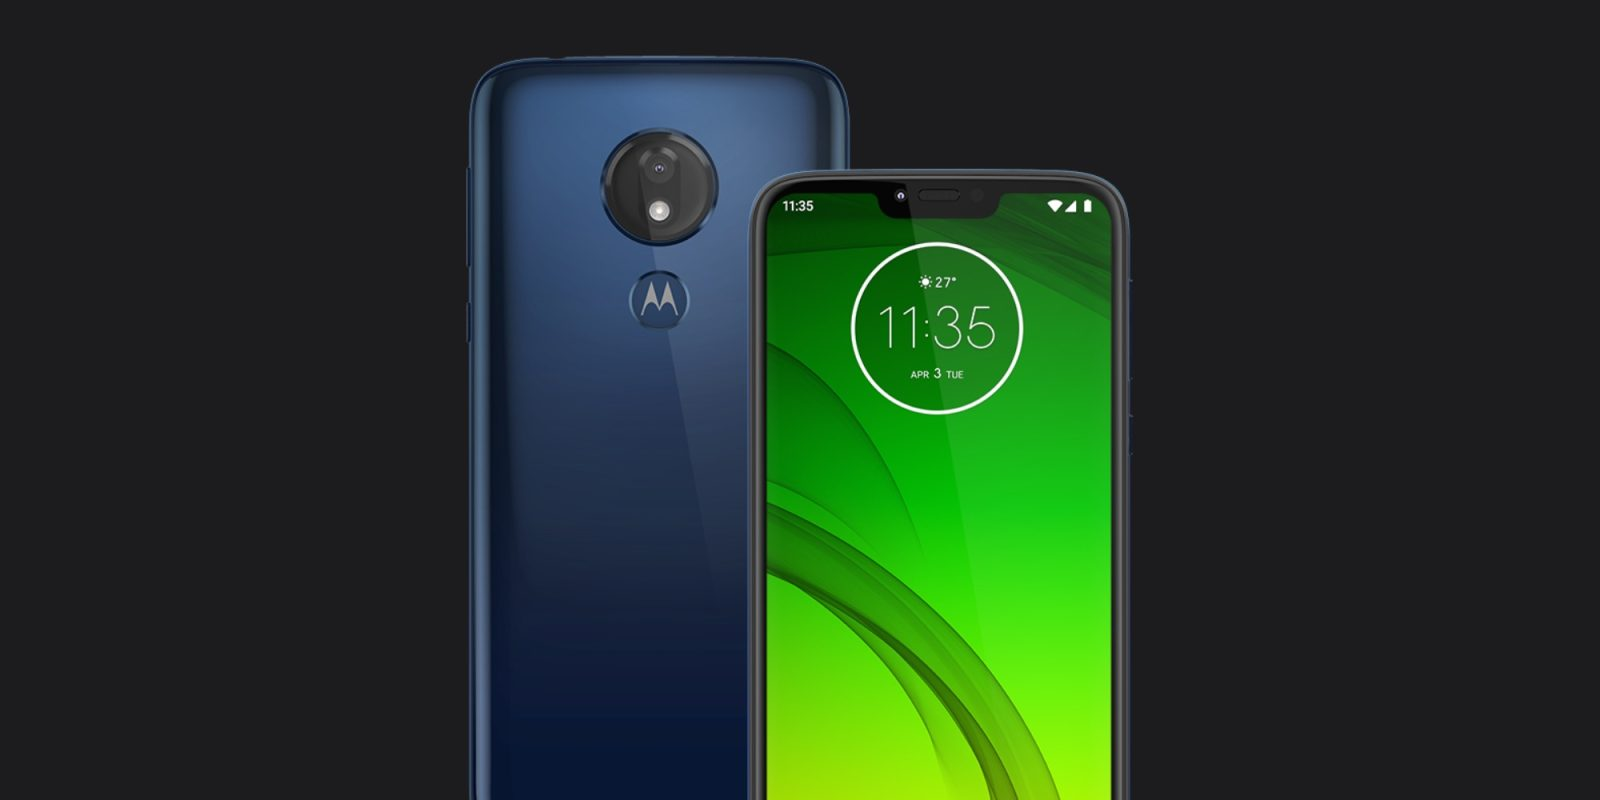 Lock-in a $50 discount on Motorola's Moto G7 Power Smartphone at $200